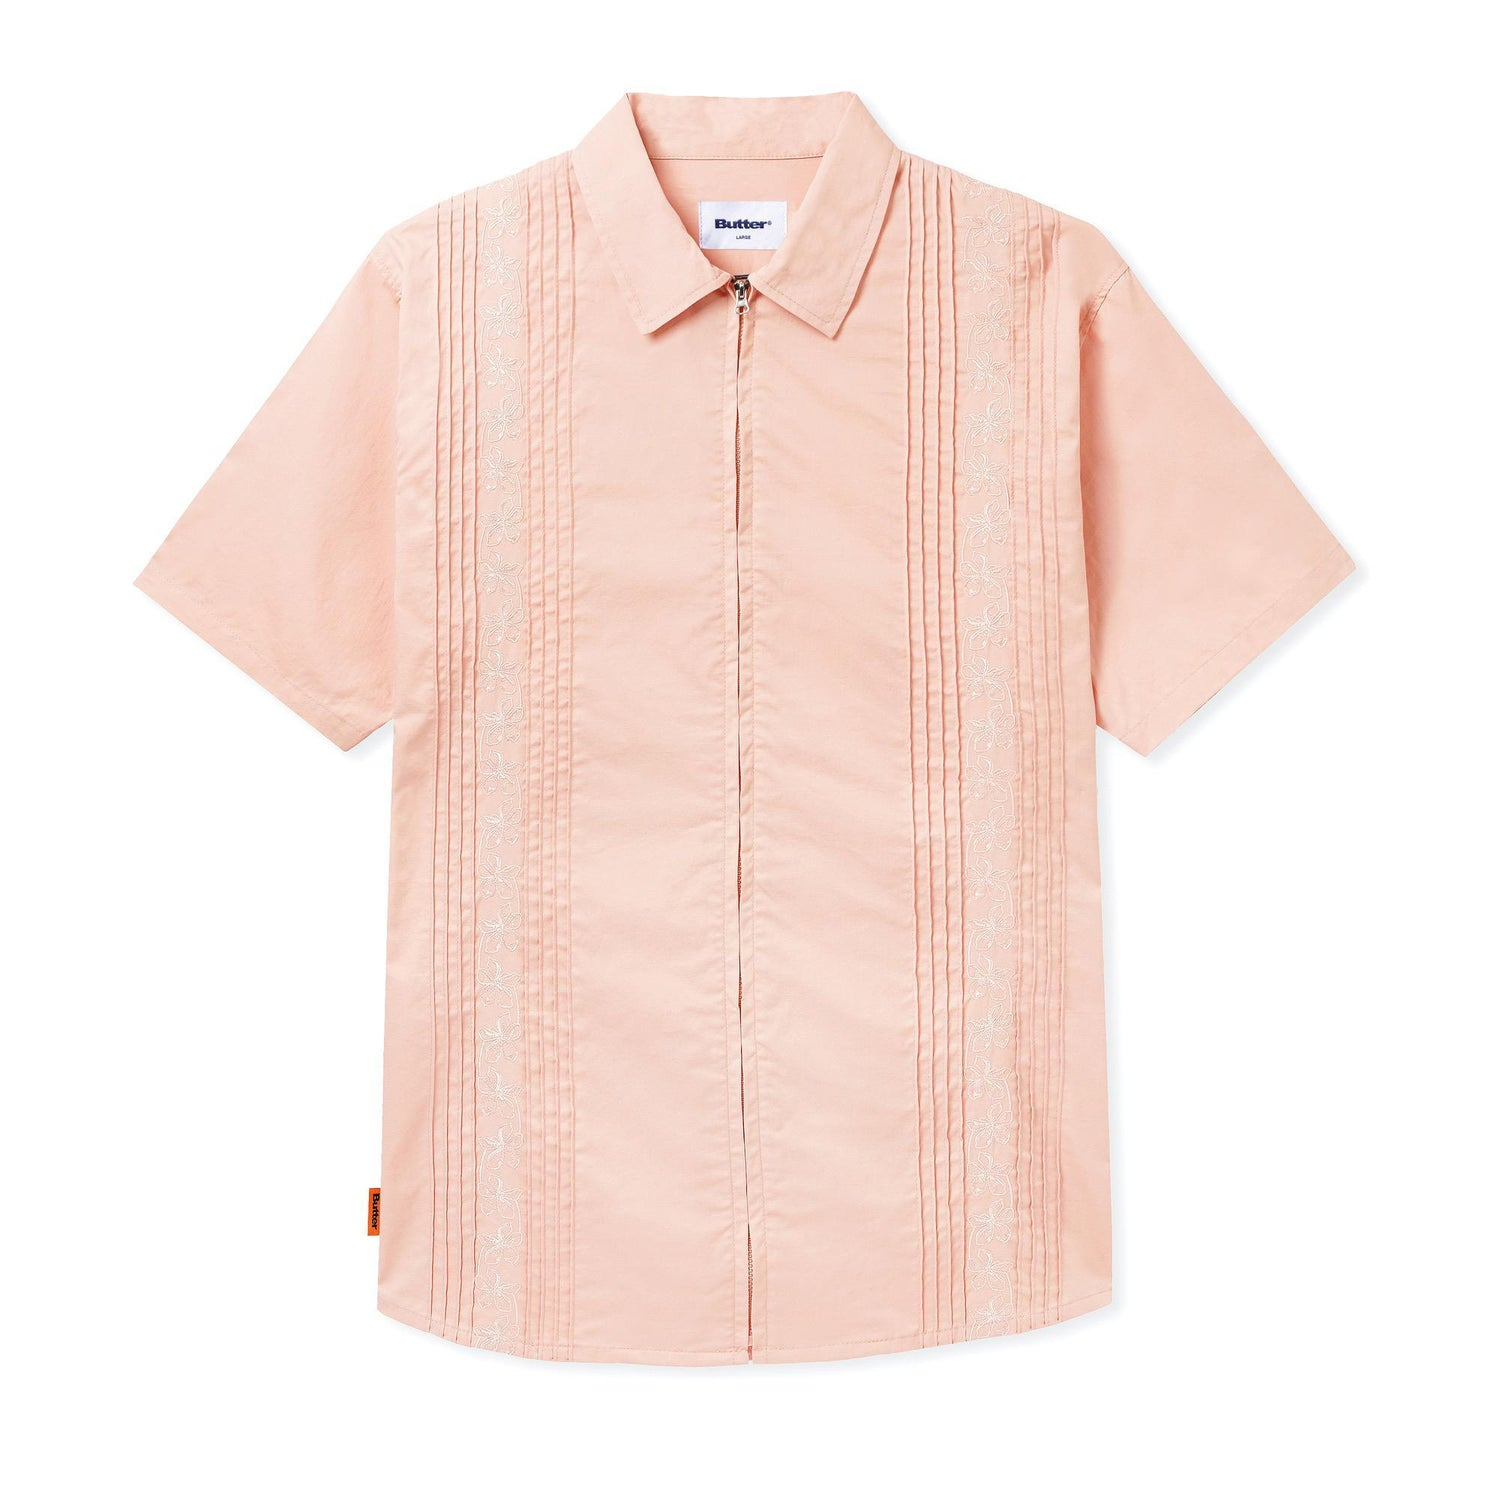 Floral S/S Zip Shirt, Peach